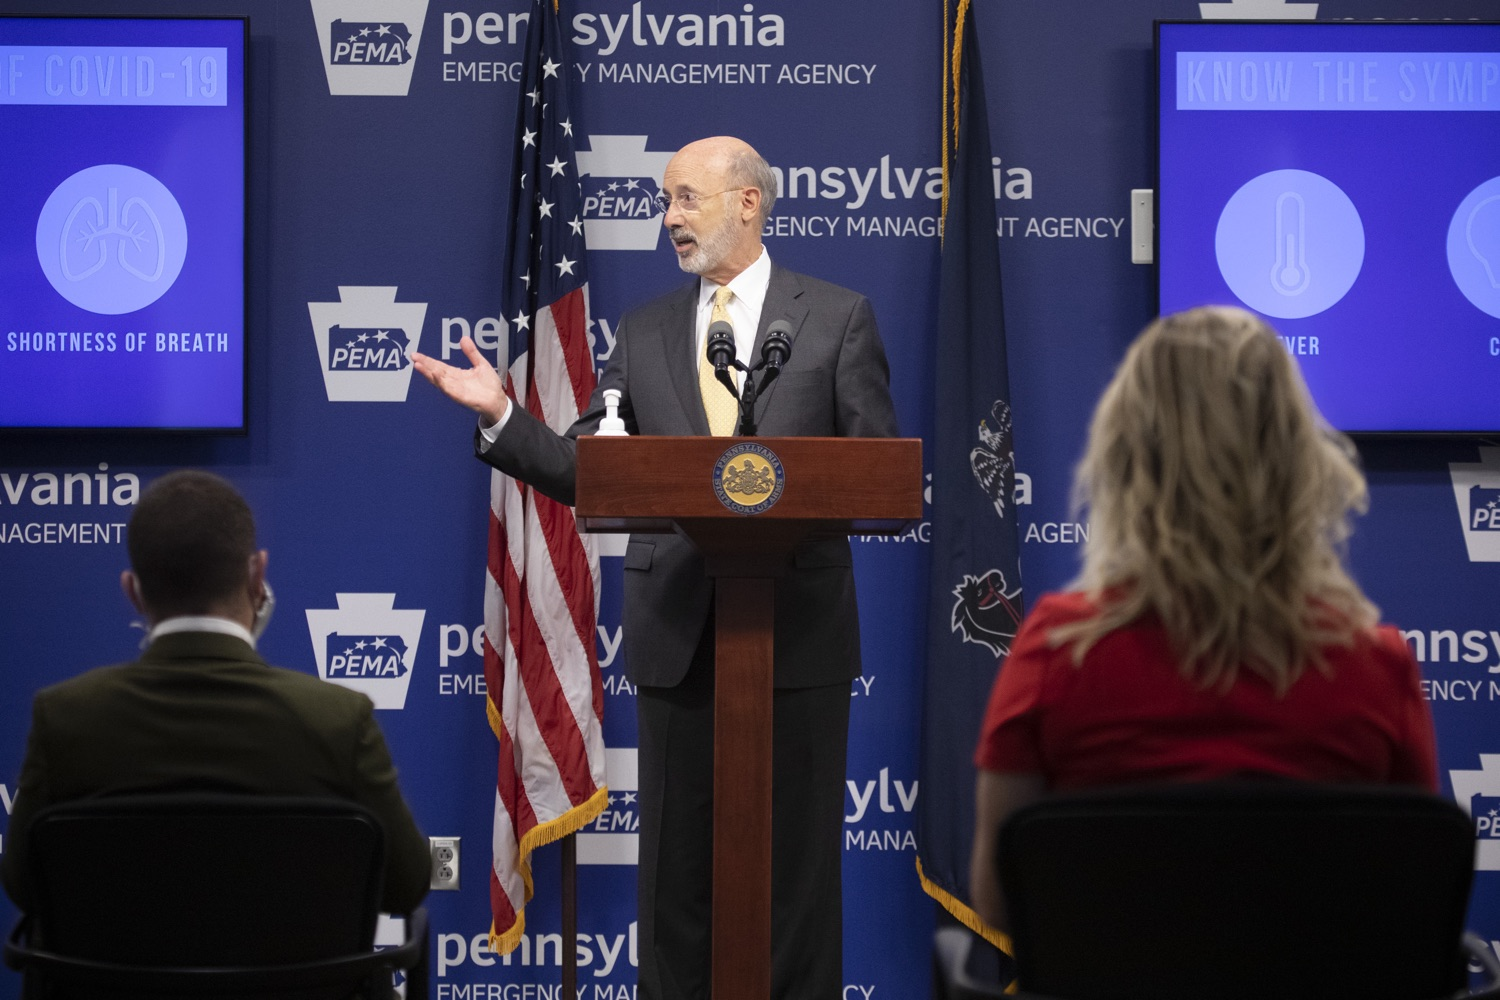 """<a href=""""https://filesource.wostreaming.net/commonwealthofpa/photo/18201_gov_orasure_dz_018.jpg"""" target=""""_blank"""">⇣Download Photo<br></a>Pennsylvania Governor Tom Wolf speaking to the press.  Today, Governor Tom Wolf announced that OraSure Technologies Inc., a developer and manufacturer of rapid diagnostic tests, collection and stabilization devices headquartered in Northampton County, will expand its manufacturing operations in the Lehigh Valley, creating 177 new, full-time jobs and retaining 233 jobs.  Harrisburg, PA  August 11, 2020"""